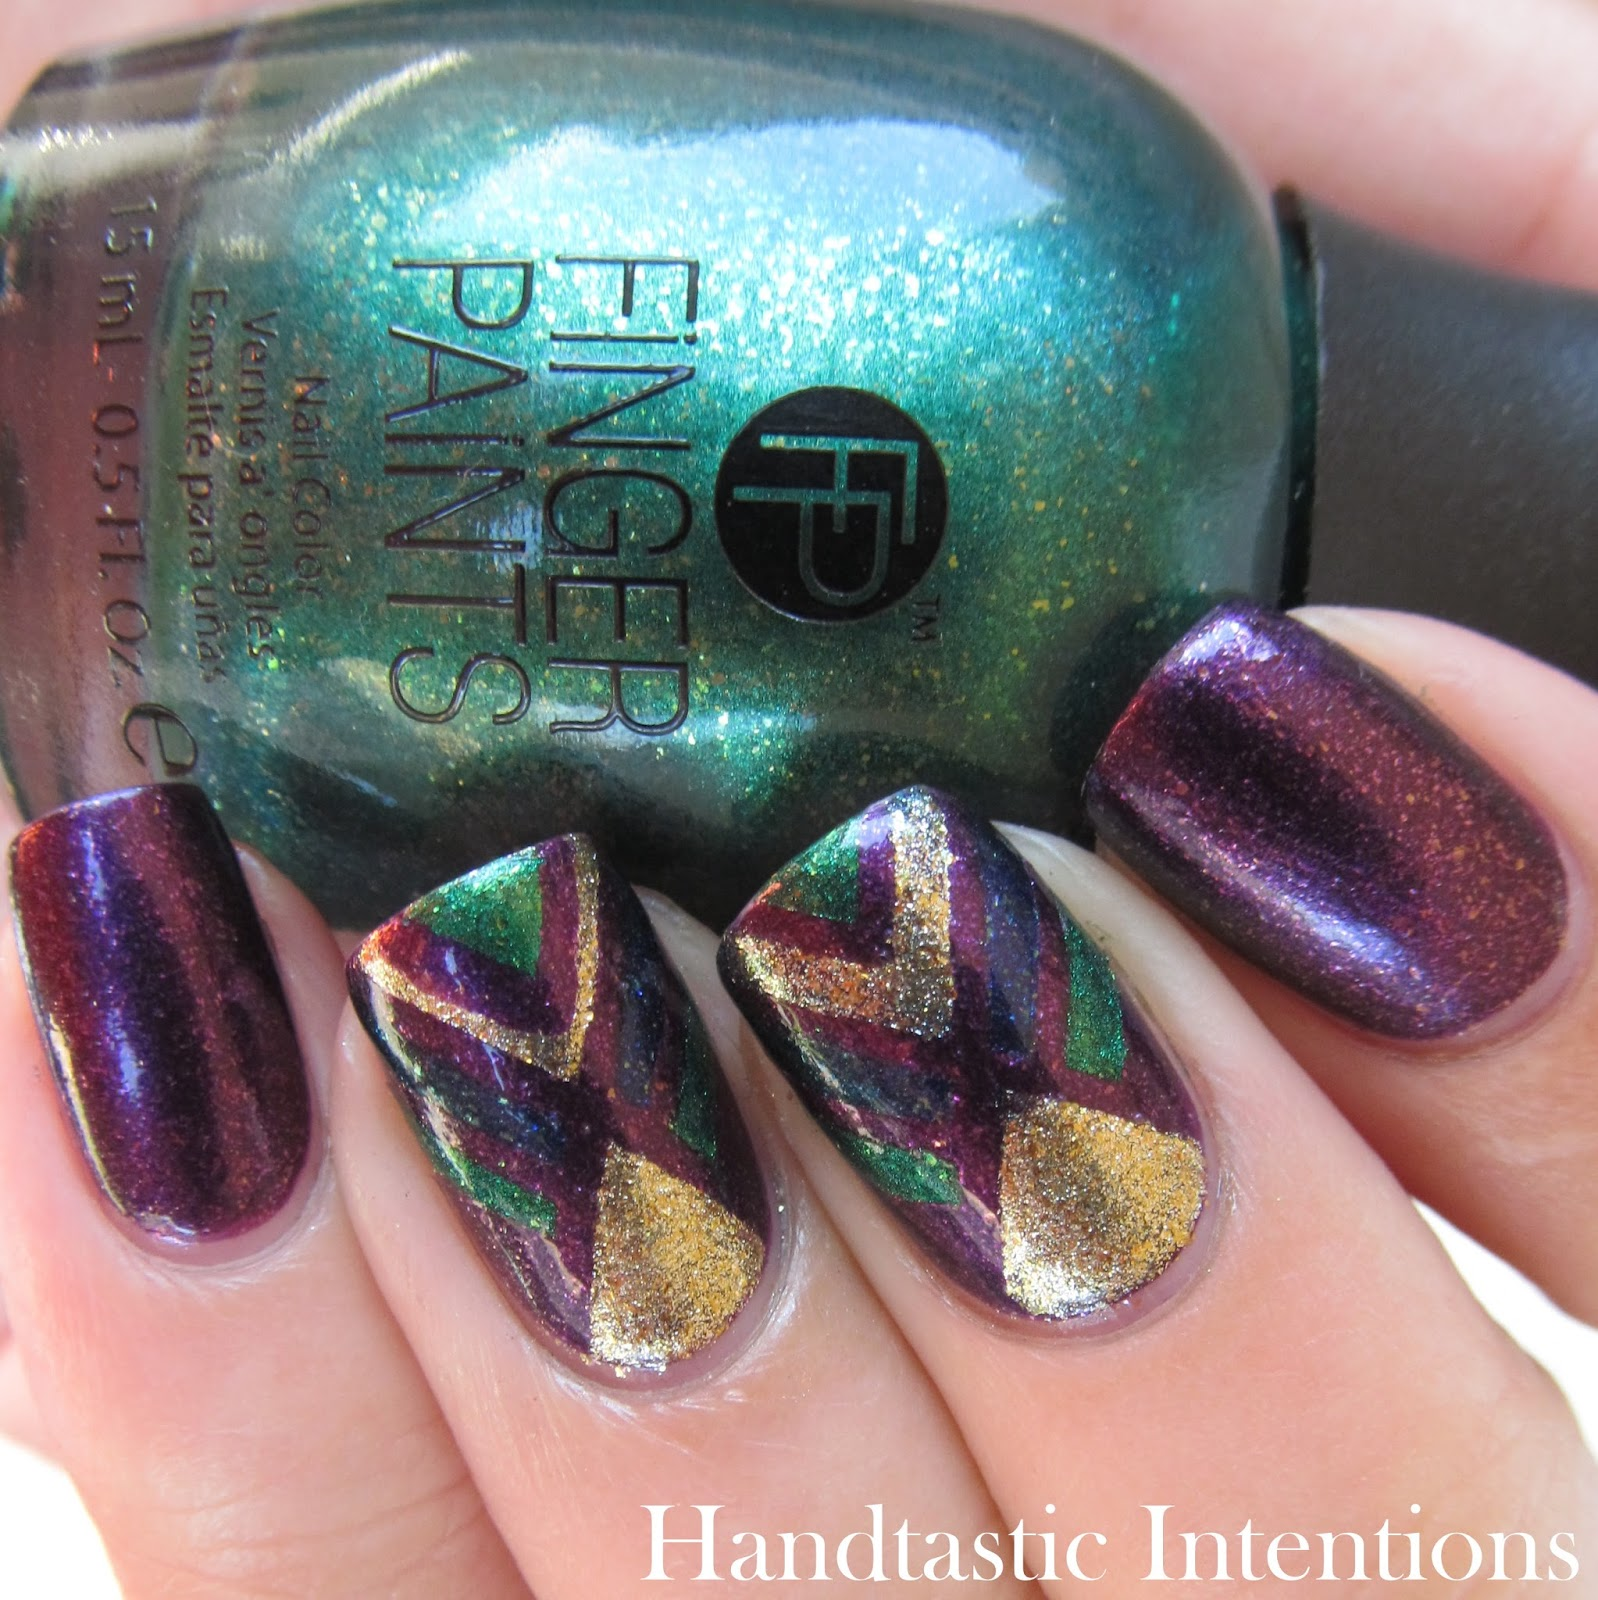 Handtastic Intentions Finger Paints Masquerade Affair Collection